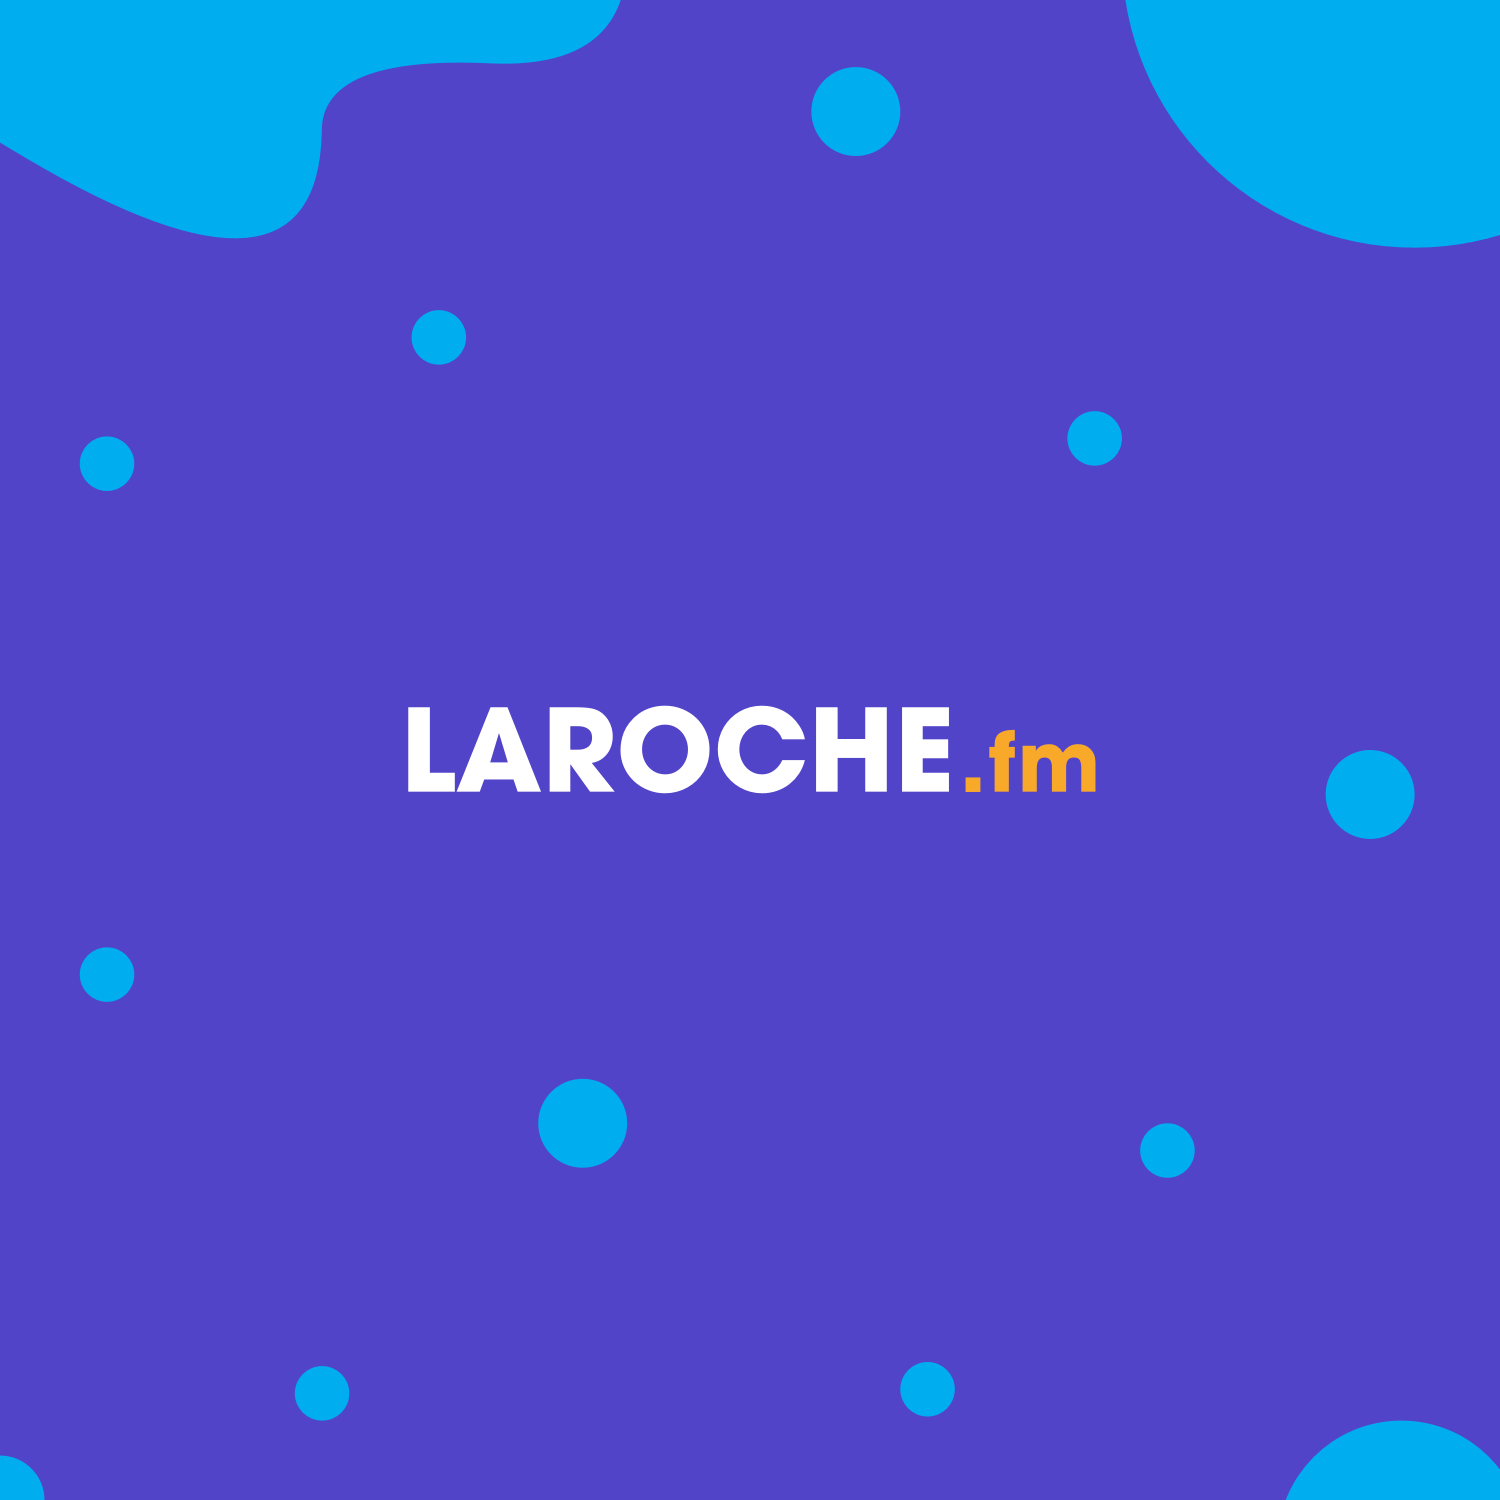 Talking - I host Laroche.fm - a podcast which I started because I believe design is more than just a beautiful UI or great UX, but it's a way of thinking that involves multiple disciplines. From behavioural economics to business knowledge and data science.On the show I had the pleasure to speak with designers, CEO's and authors from companies such as GoPro, Basecamp, Marvel, Work&Co, TreeHouse, Headspace and many others.